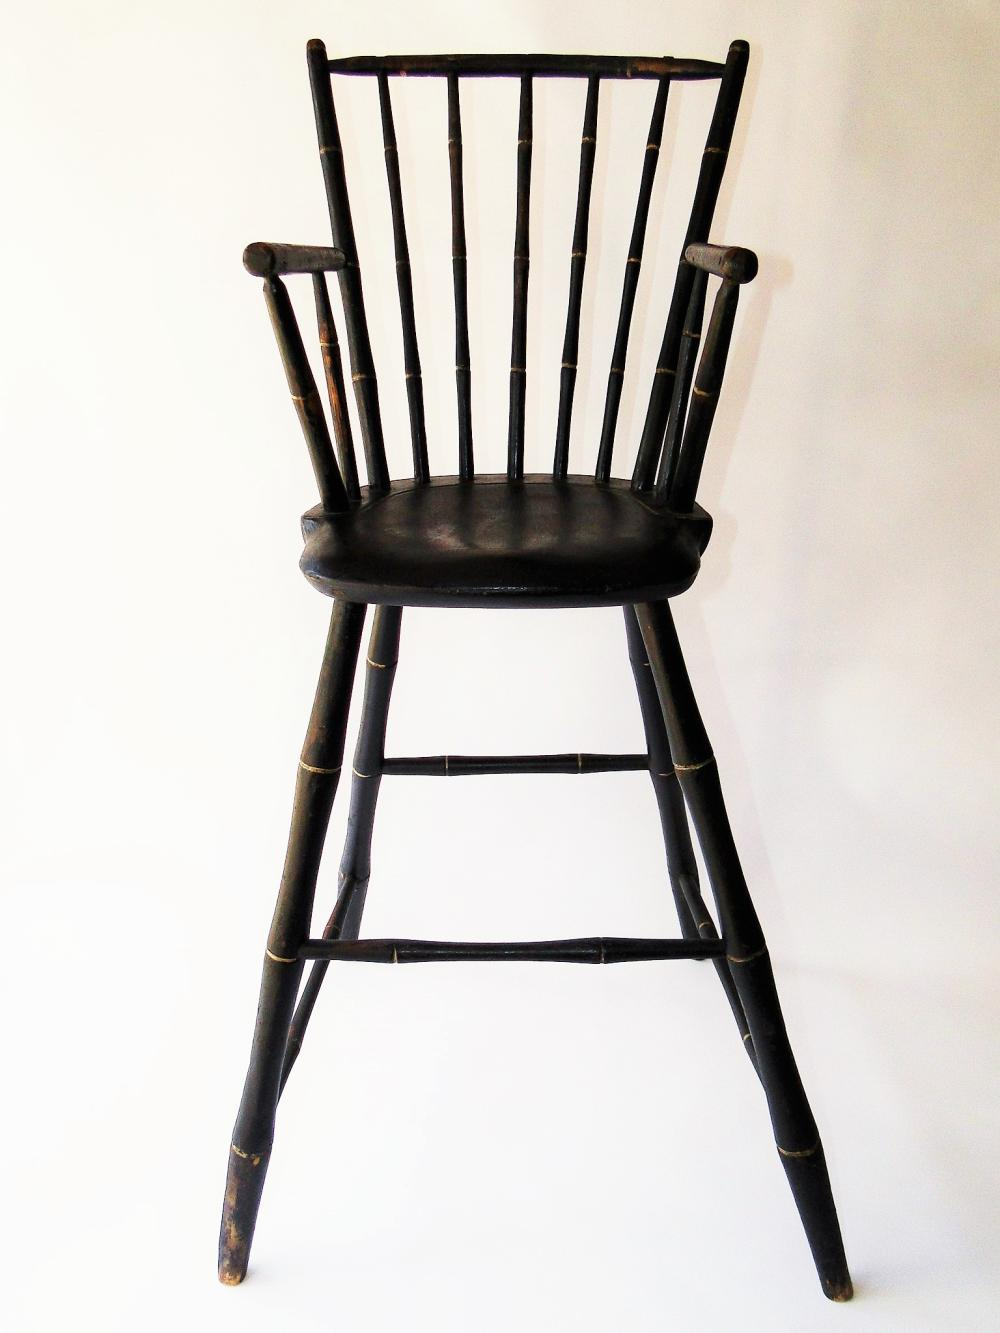 C. 1780-1800 CHILDS WINDSOR HIGH CHAIR